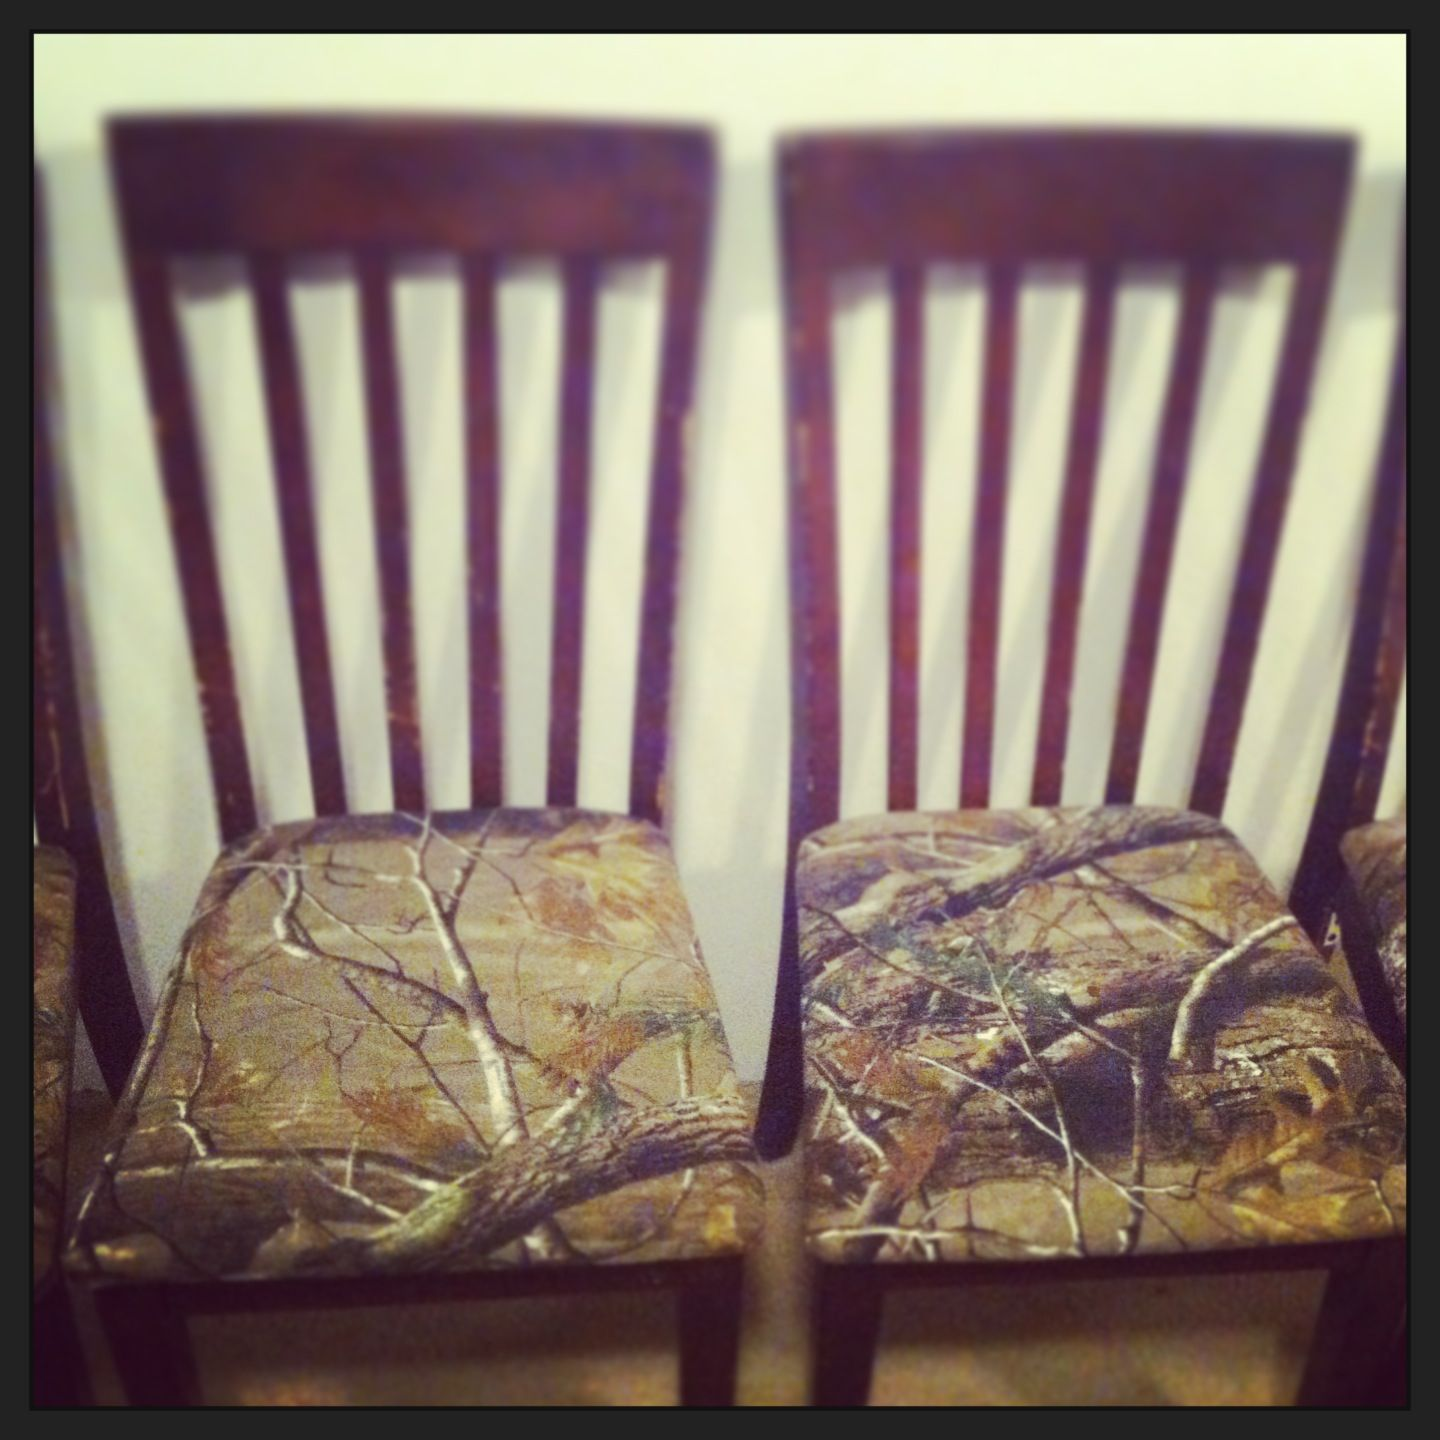 Reupholstered Kitchen Chairs With Camo Fabric.